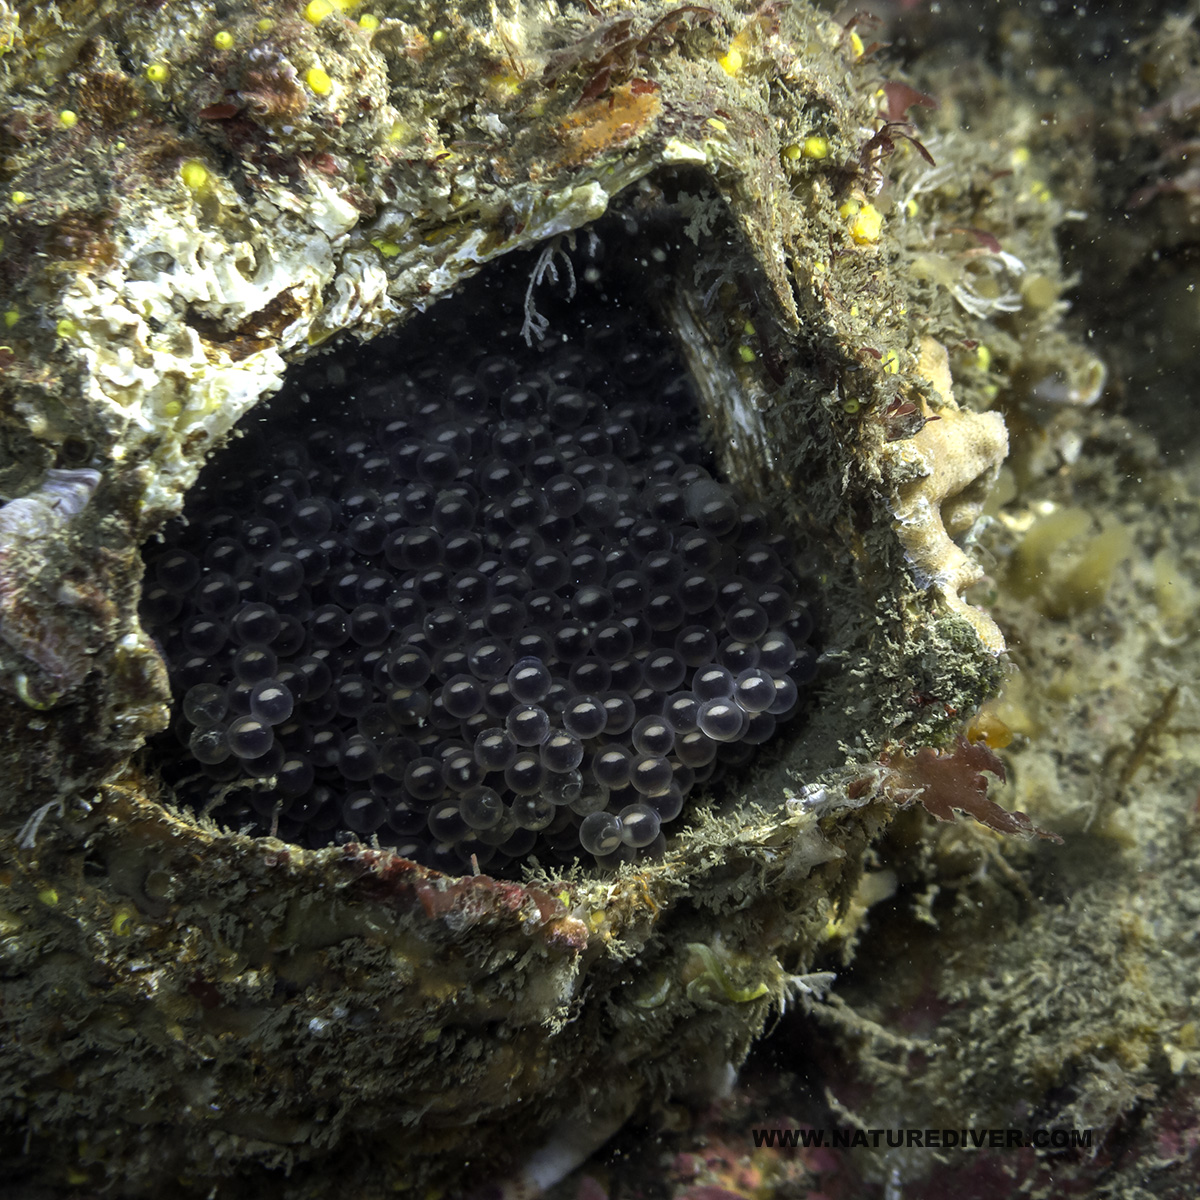 Fish eggs in Giant Barnacle